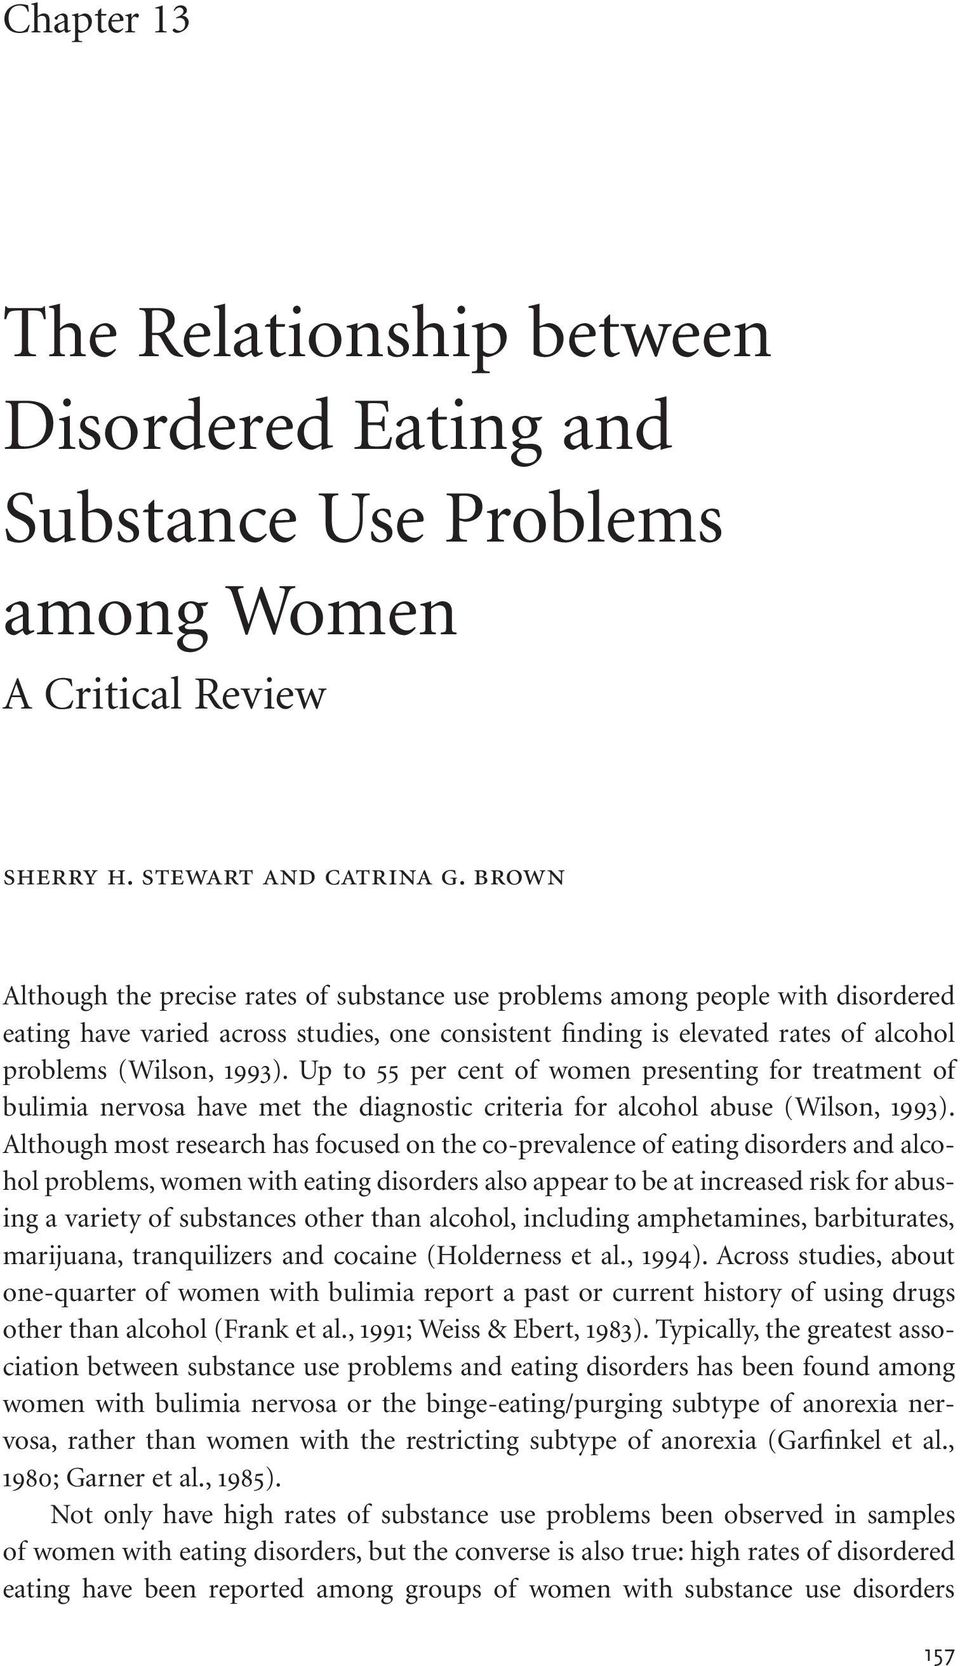 Up to 55 per cent of women presenting for treatment of bulimia nervosa have met the diagnostic criteria for alcohol abuse (Wilson, 1993).